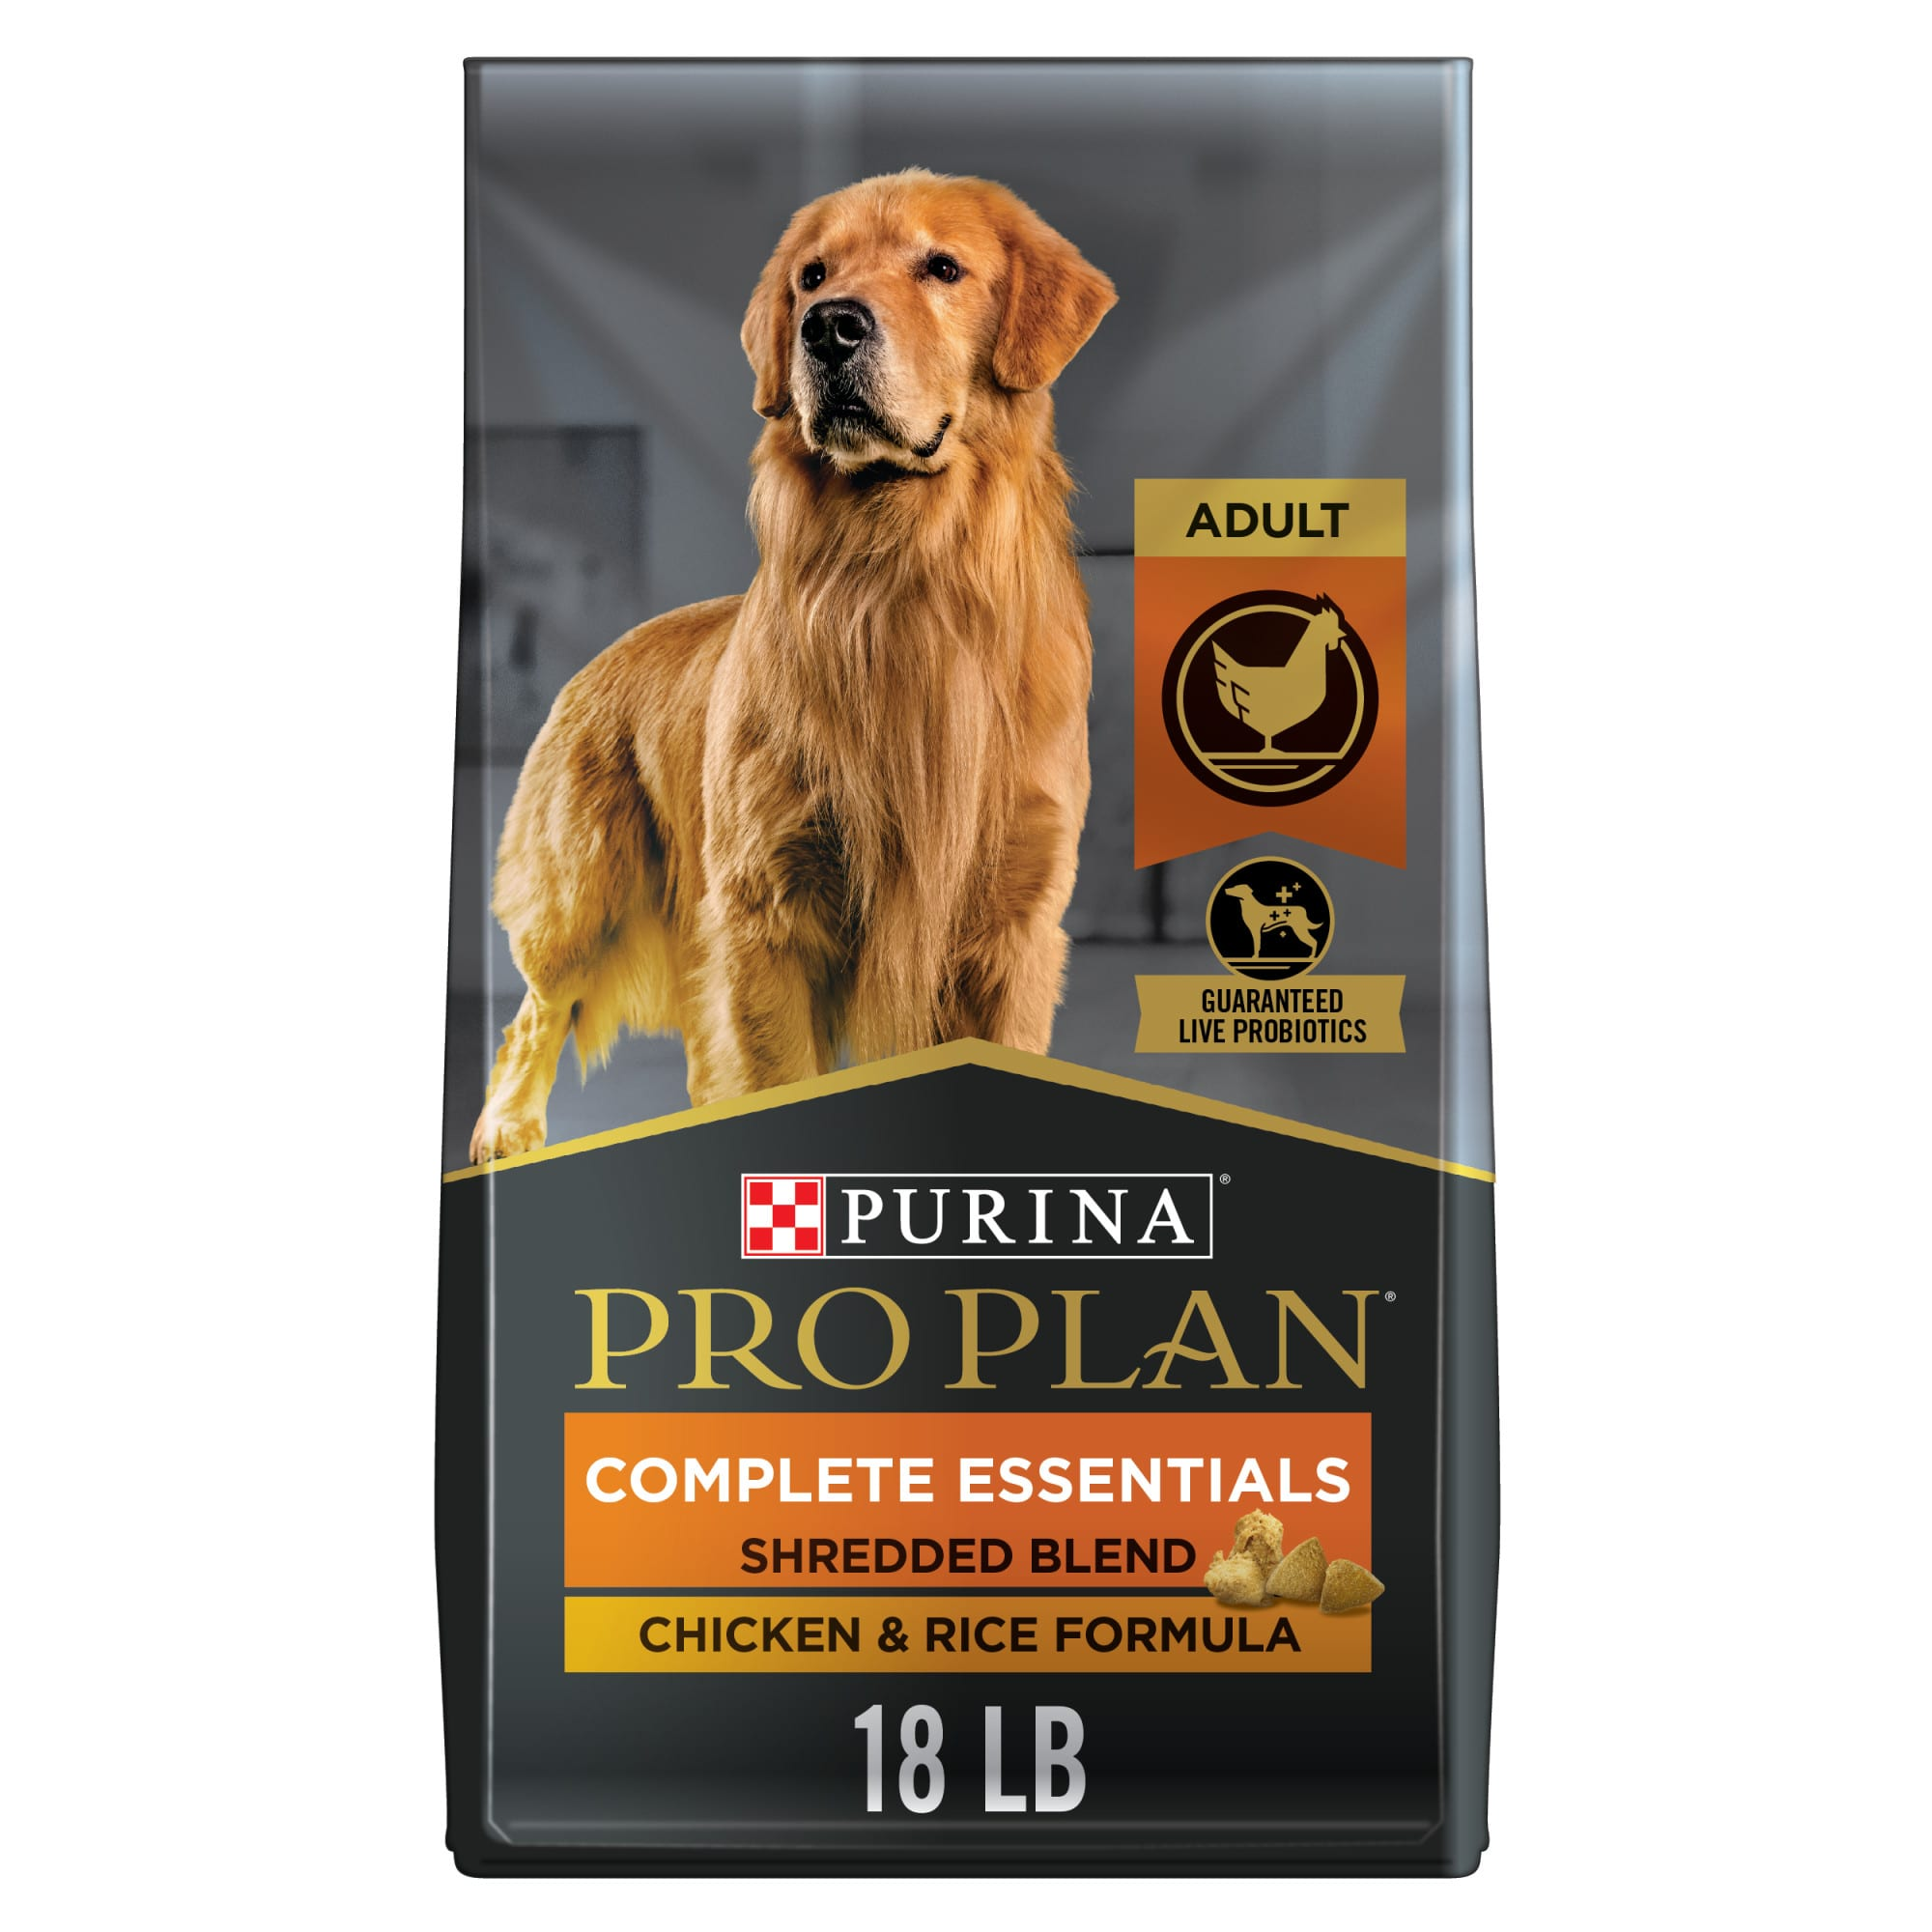 Serve the delicious food your dog expects and the high-quality ingredients you trust with Purina Pro Plan Brand Dog Food Shredded Blend Chicken & Rice Formula adult dry dog food. Real chicken as the first ingredient and rice, an excellent source of carbohydrates for energy, create a wholesome meal with great flavor. The hard dog food kibble and tender shredded pieces provide a texture that keeps him engaged with every bite. Feel good about serving your adult dog 100% complete and balanced nutrition, and take comfort knowing that each serving contains optimal levels of protein and fat that help dogs maintain an ideal body condition. Vitamin A and linoleic acid, an omega-6 fatty acid, promote healthy skin and coat to keep him looking great, and guaranteed live probiotics help to support his digestive health. Your dog\\\'s health and happiness are important to you, and now you can show it by pouring a bowl of this Purina Pro Plan COMPLETE ESSENTIALS formula at mealtime.